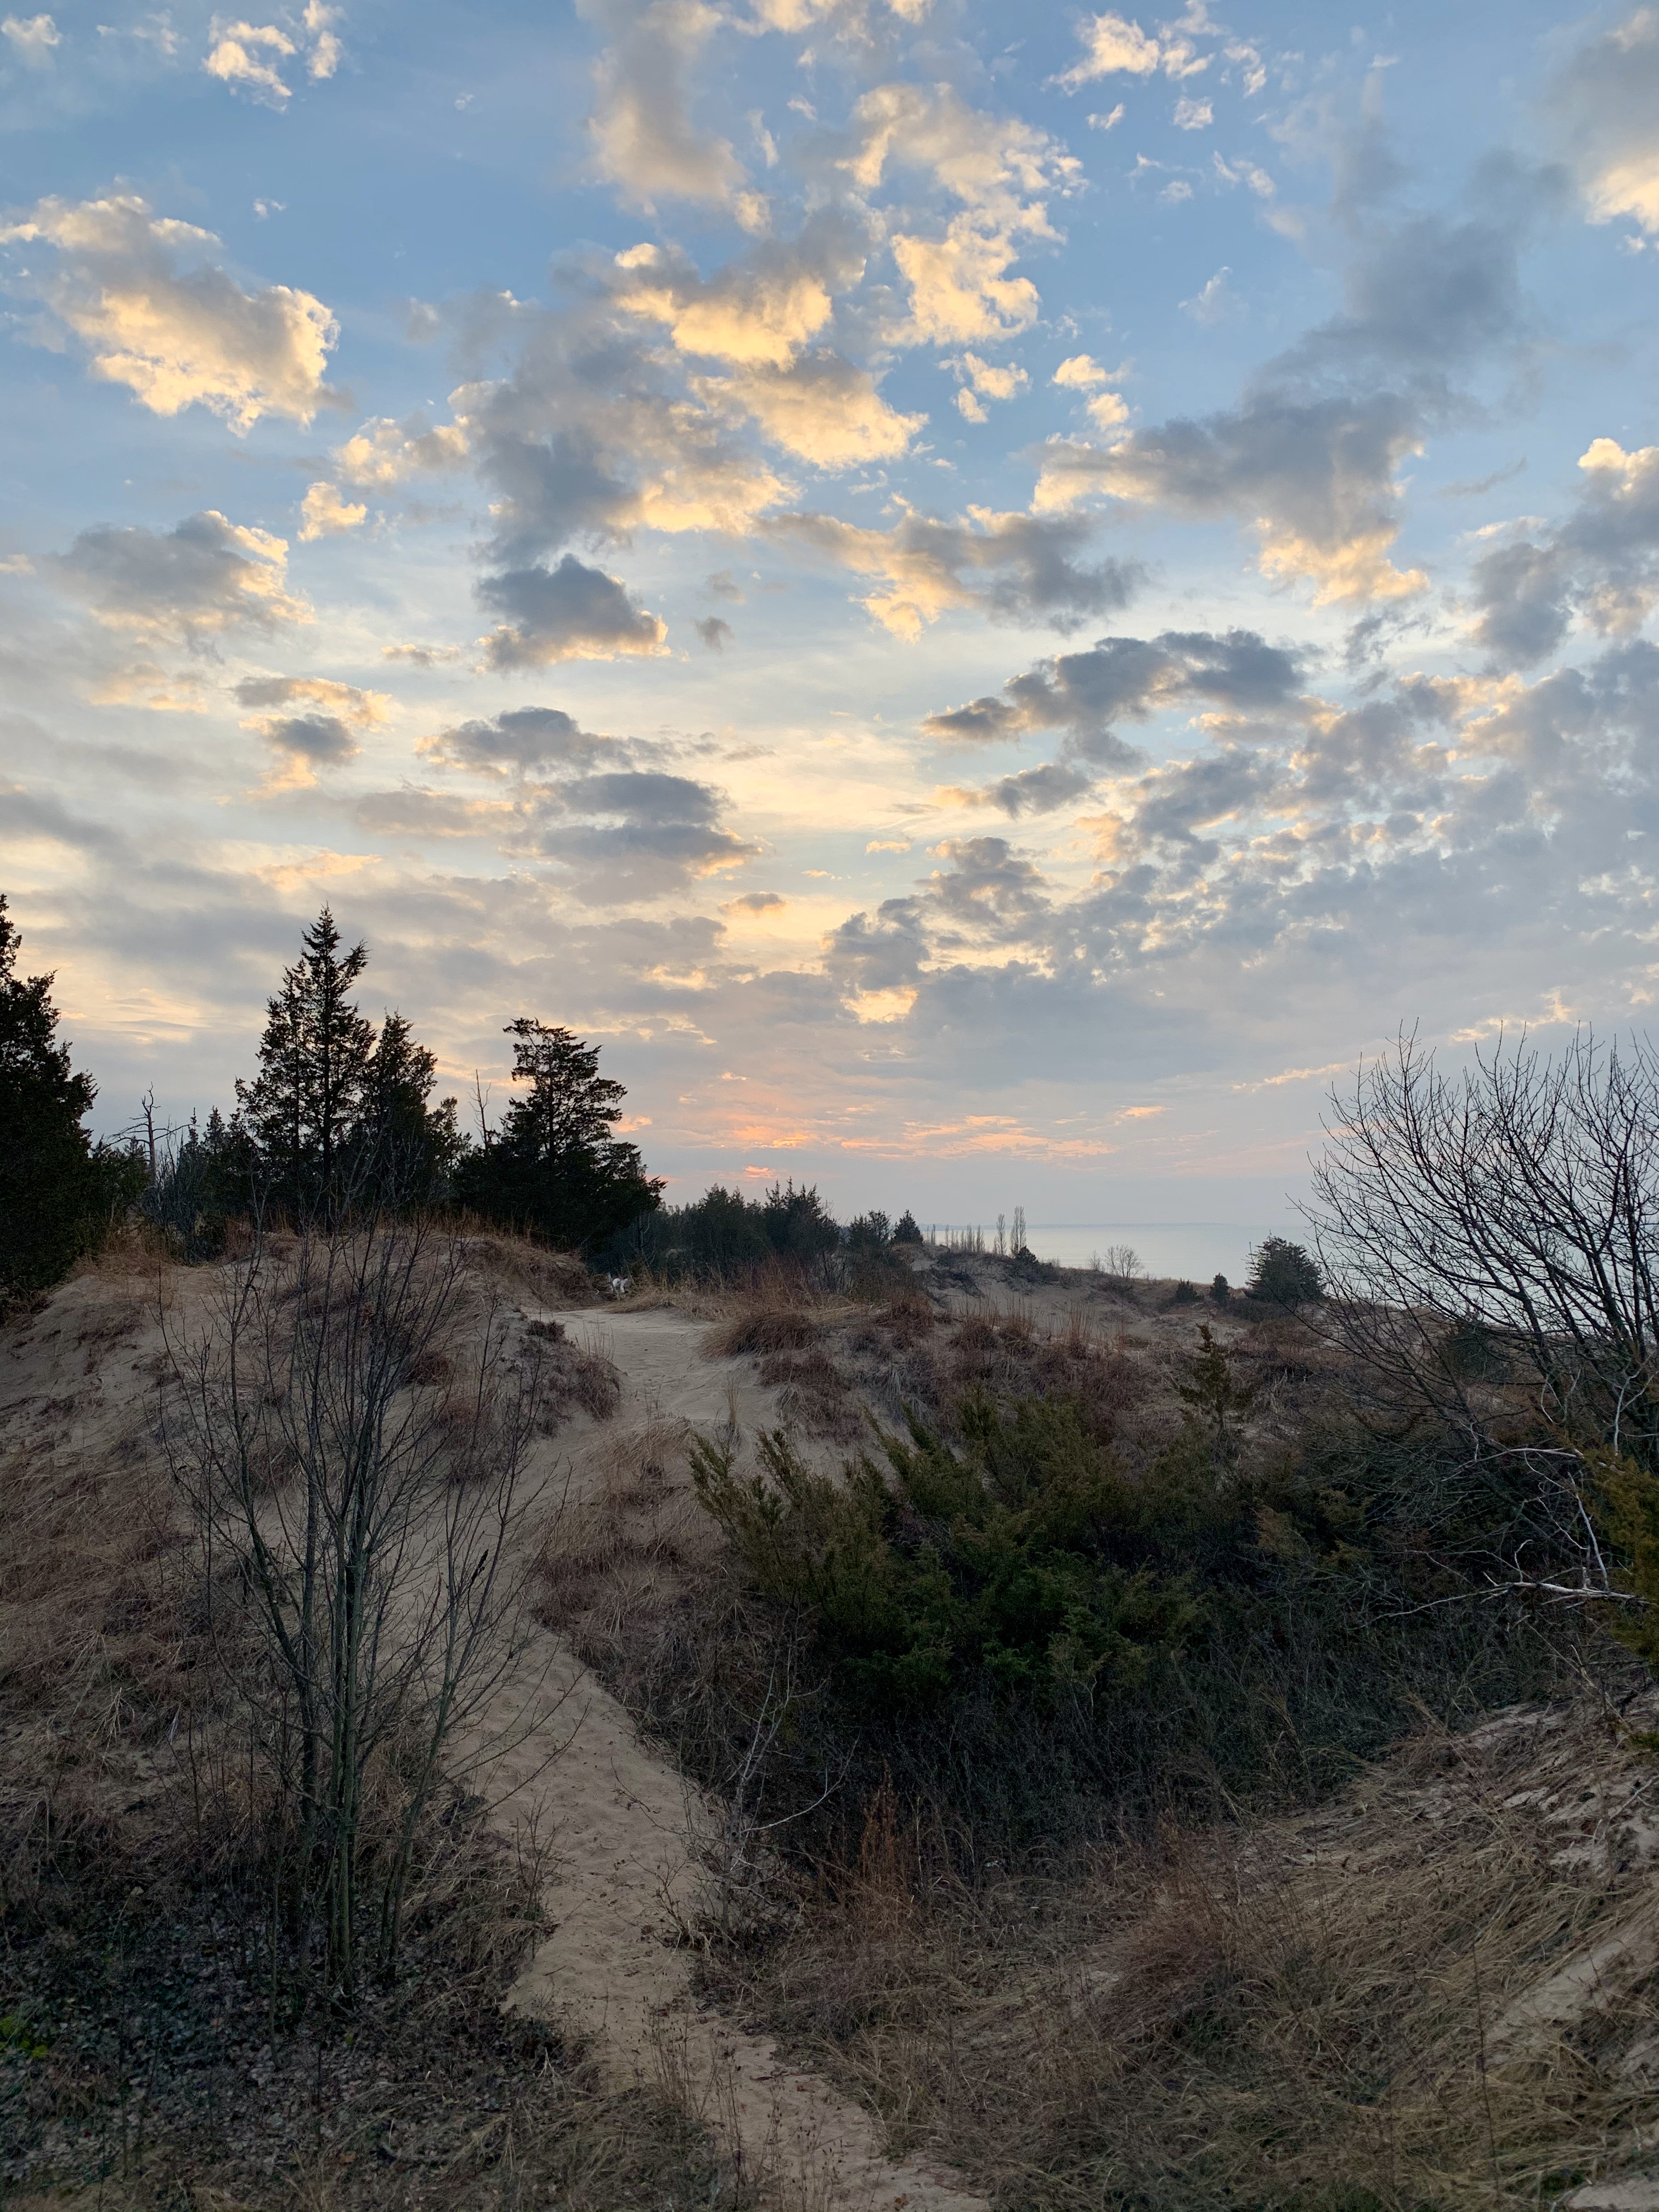 sandy dunes and a sunset